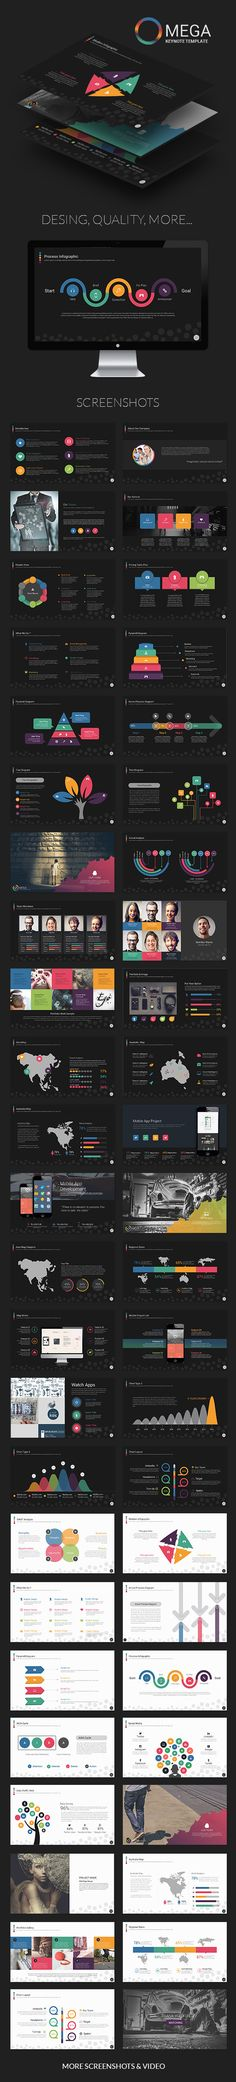 45 Best Infographic images | Chart design, Graph design, Infographic